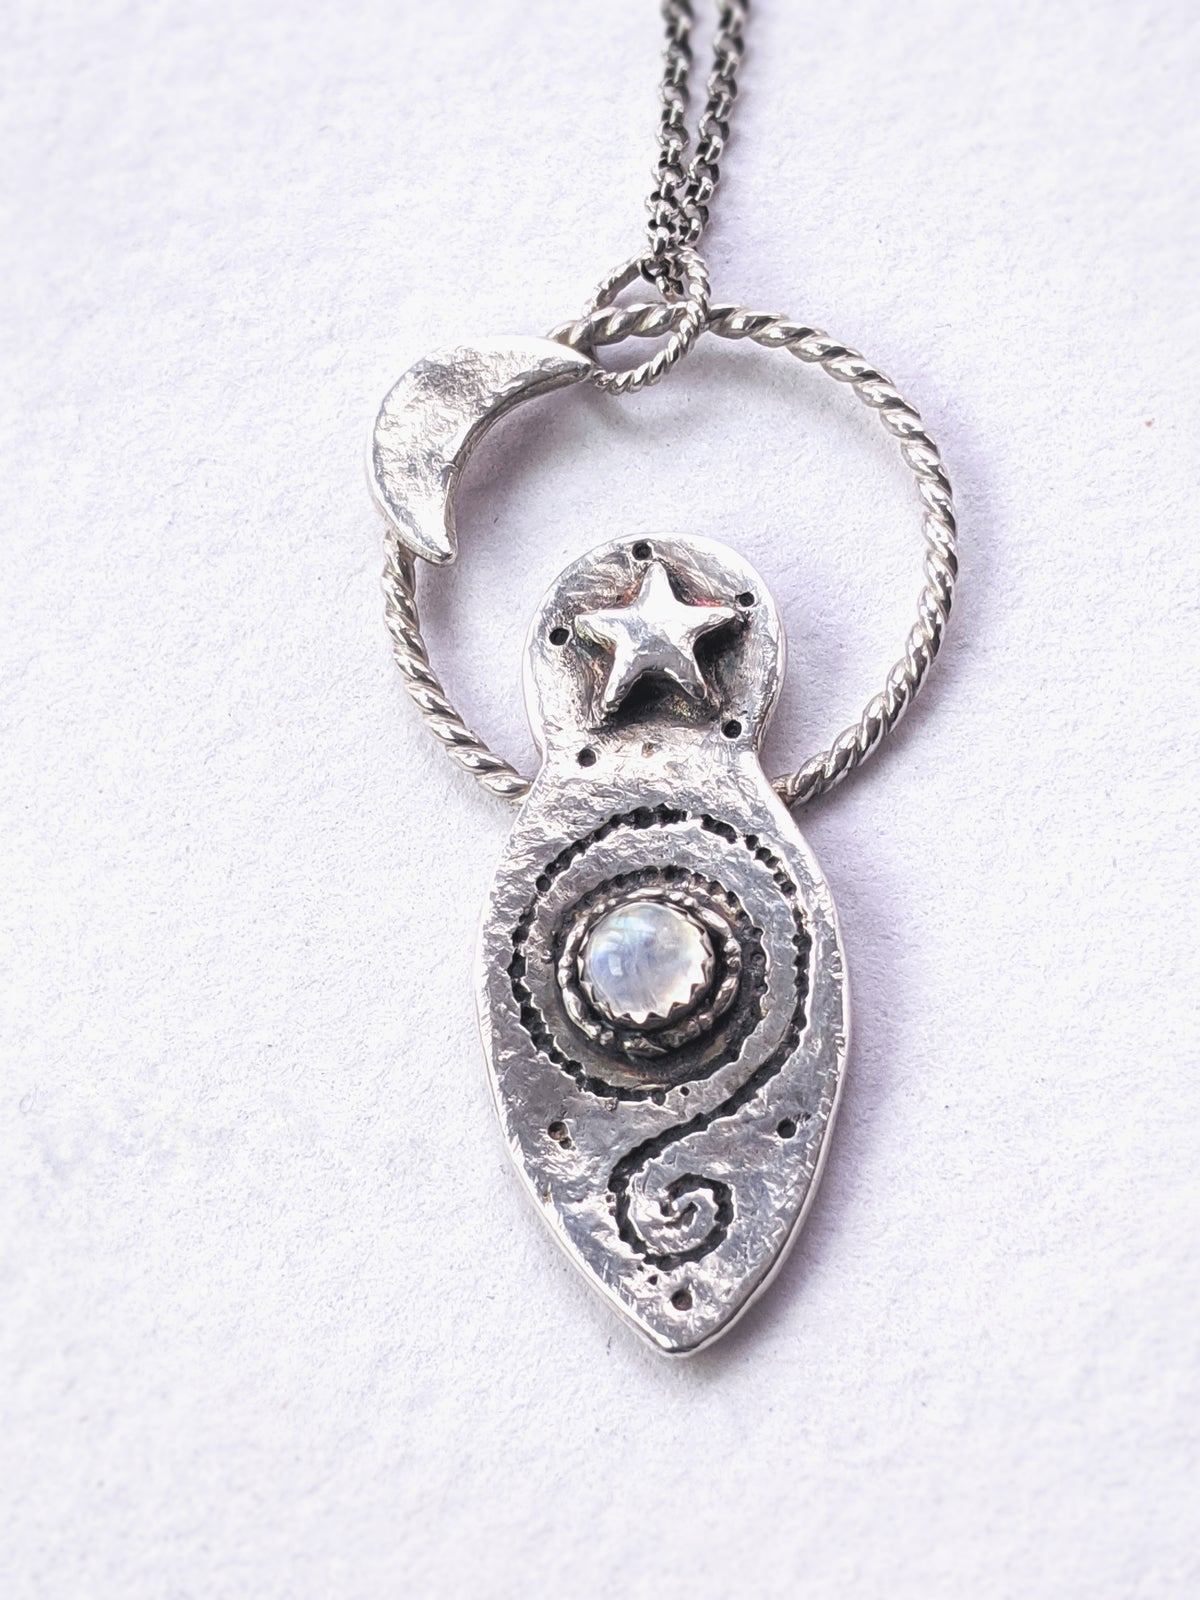 Moon Goddess recycled silver and moonstone pendant